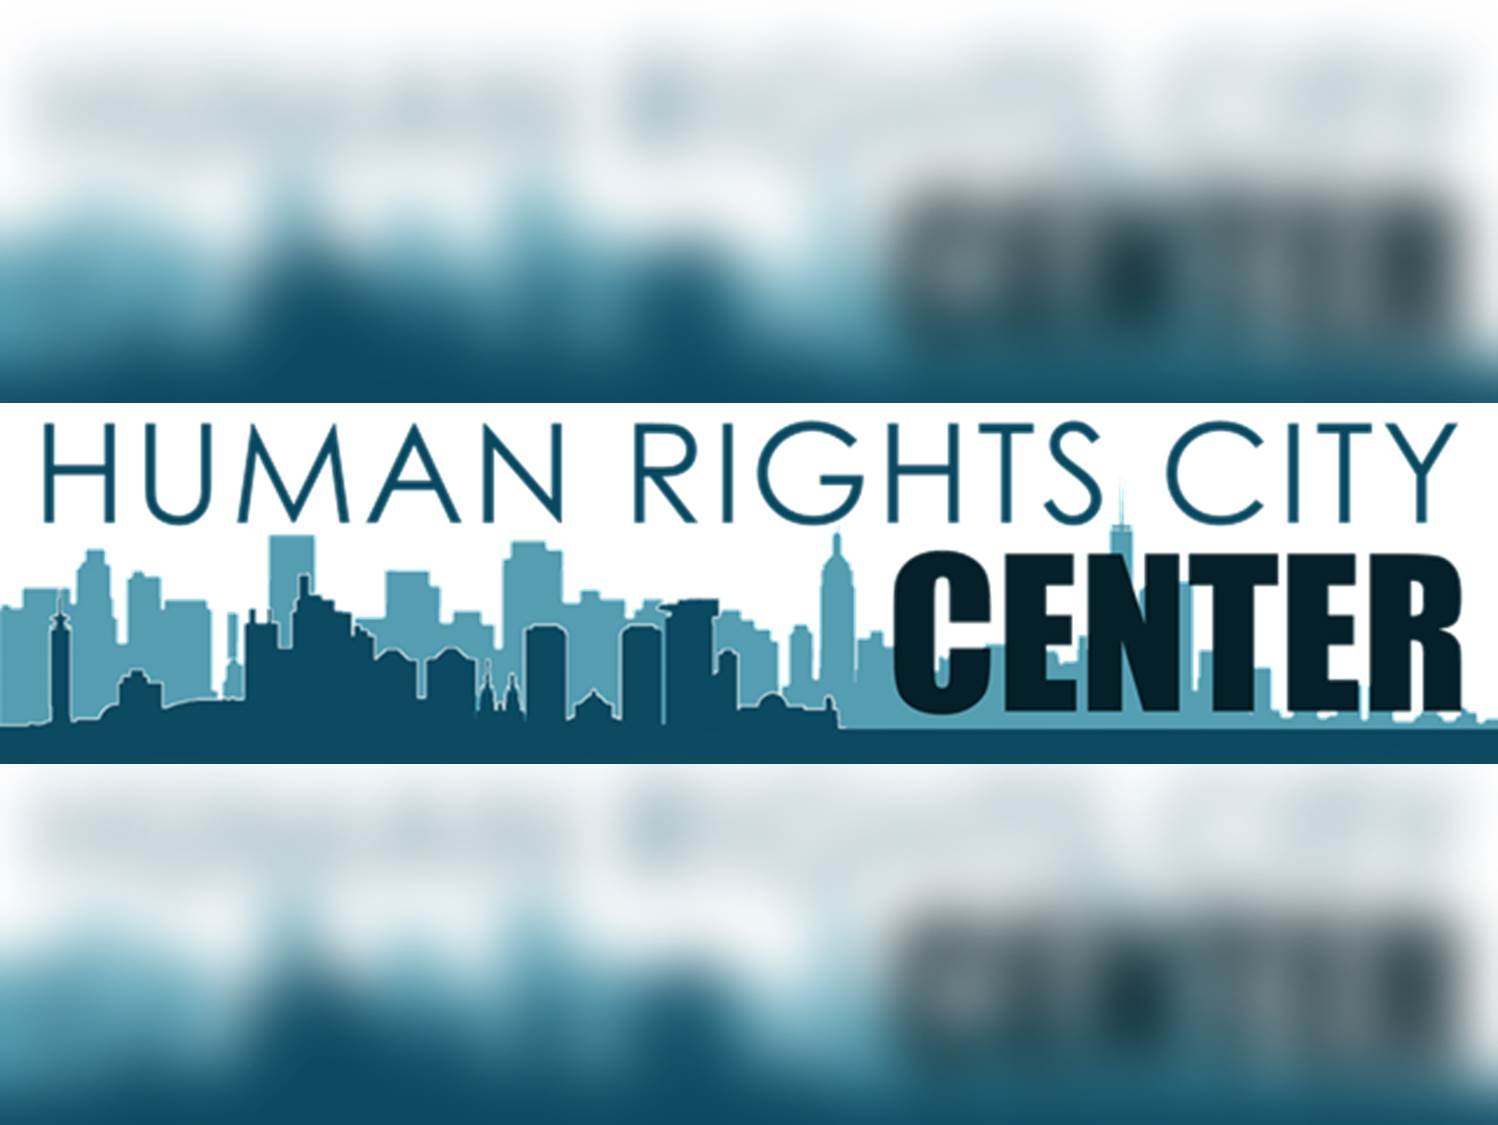 HUMAN RIGHTS CITY CENTER WEBSITE GOES LIVE